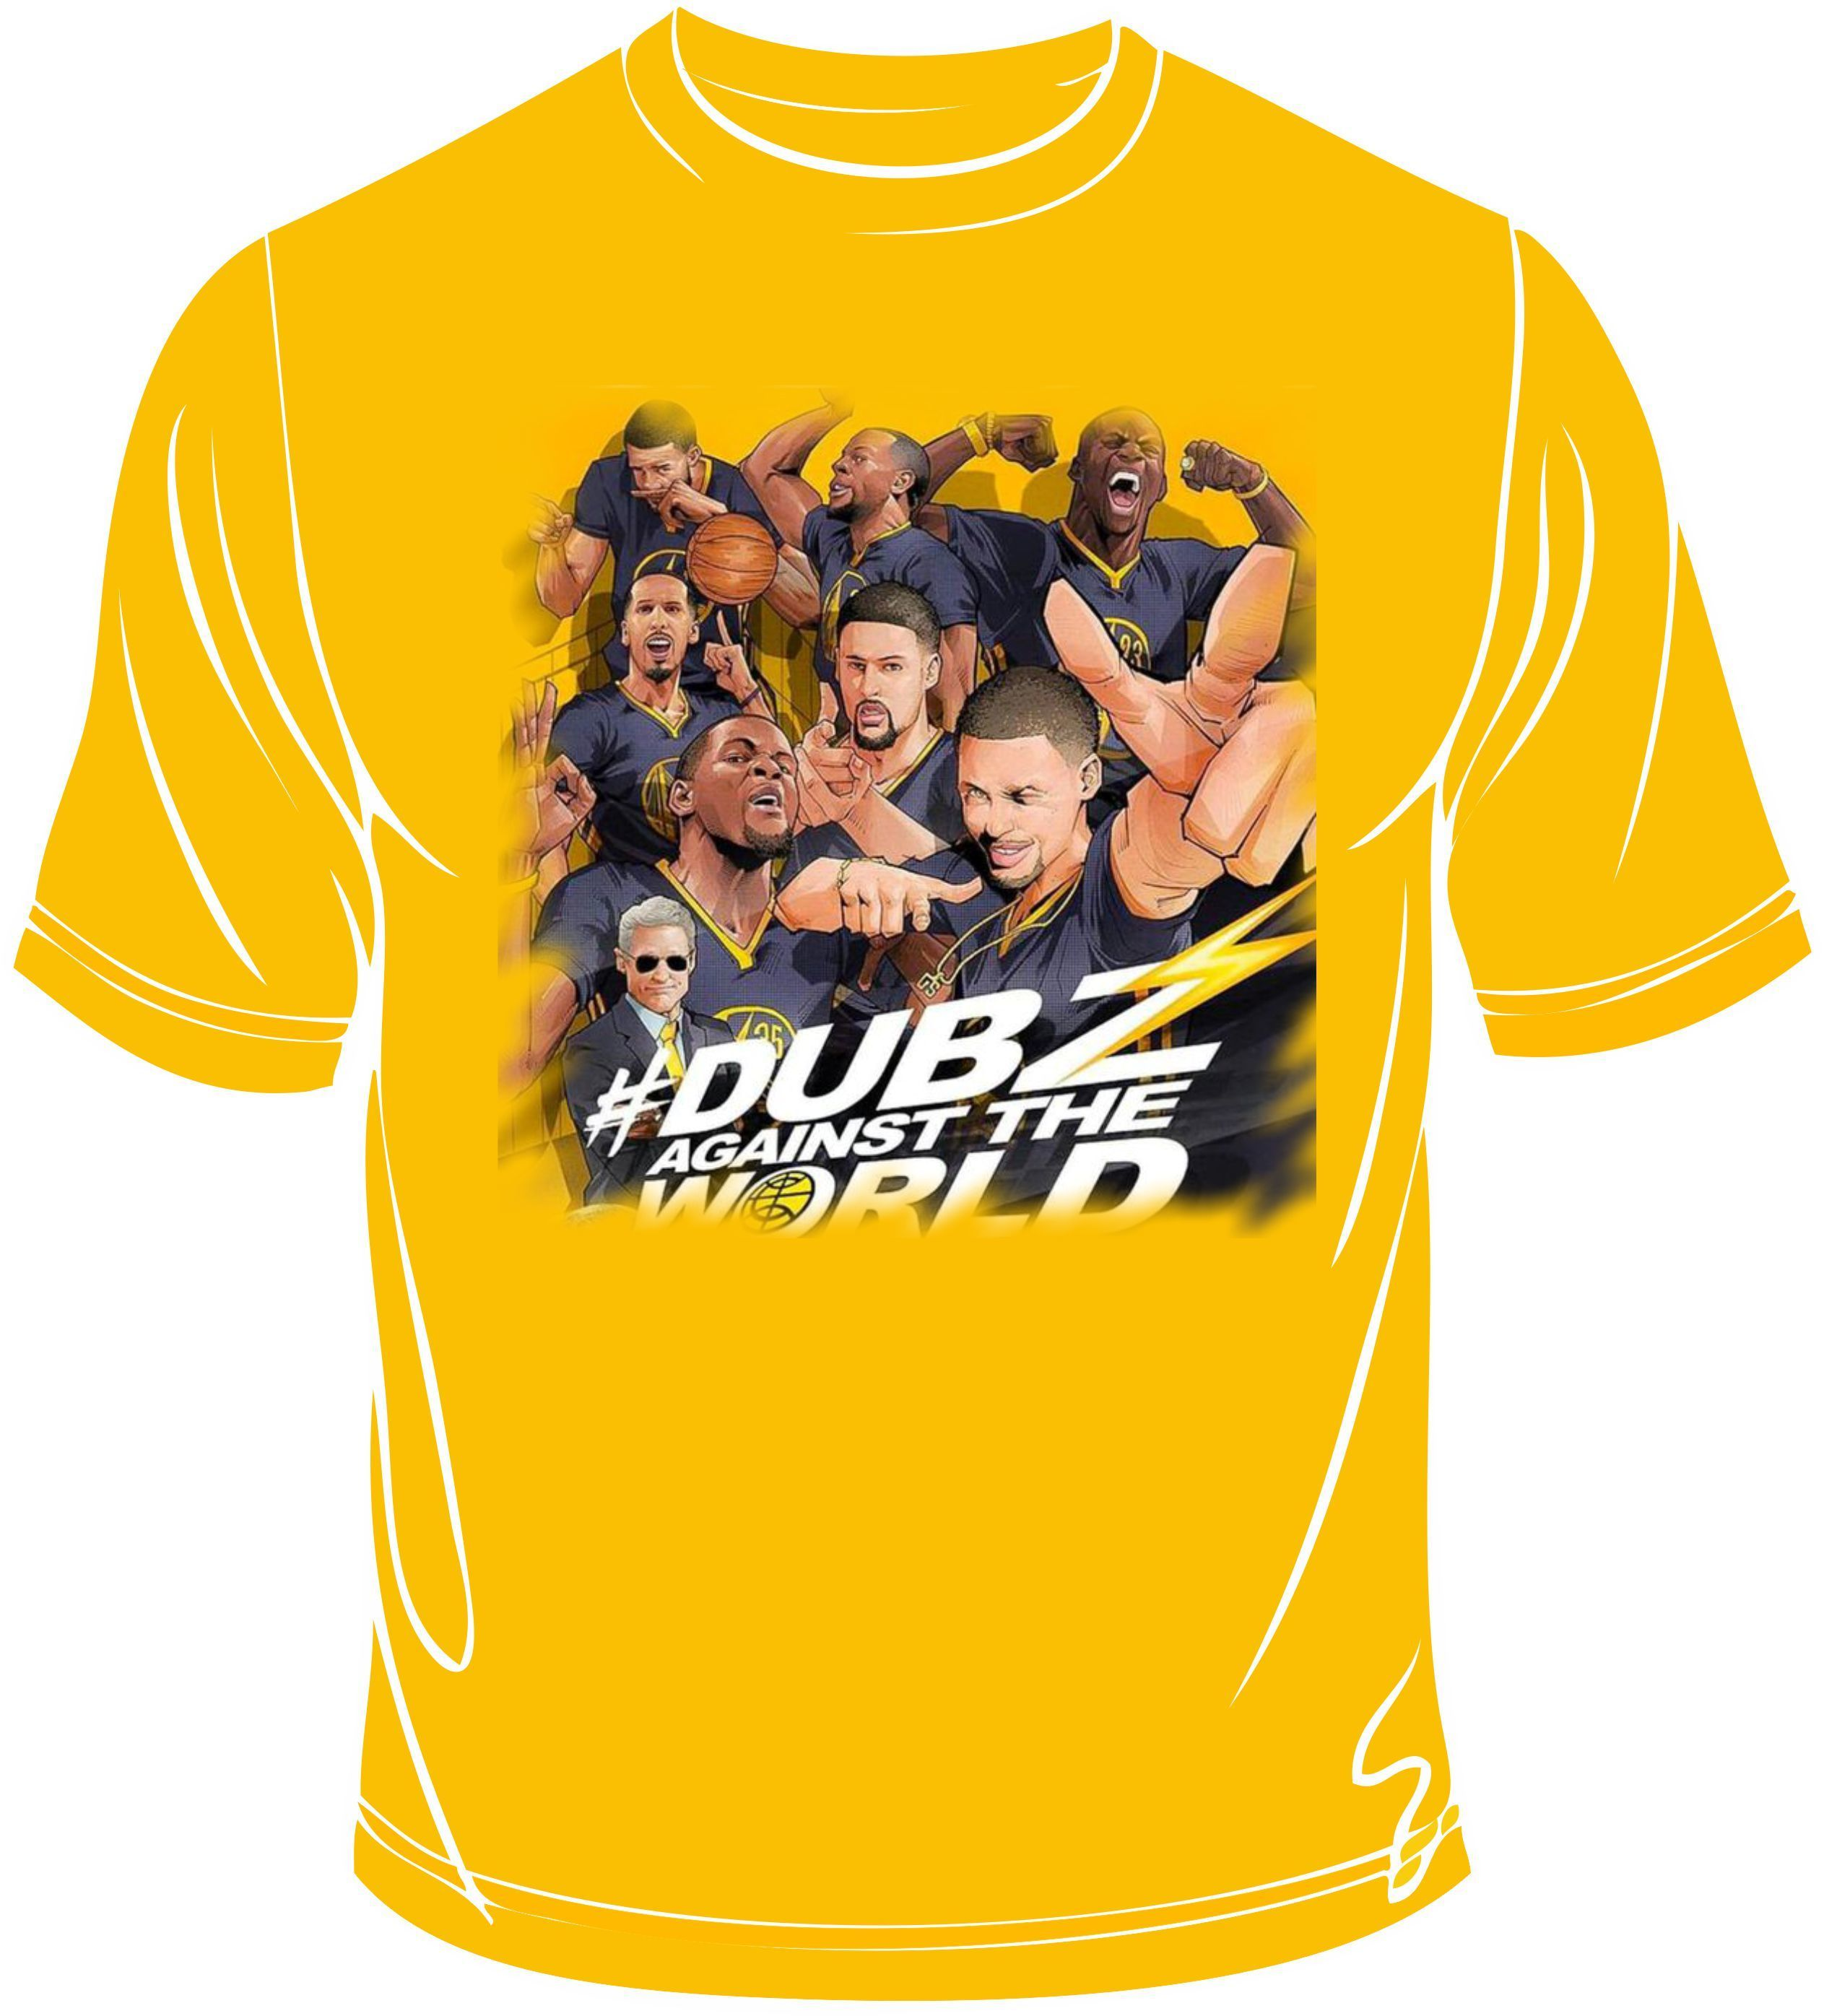 Dub nation t-shirt